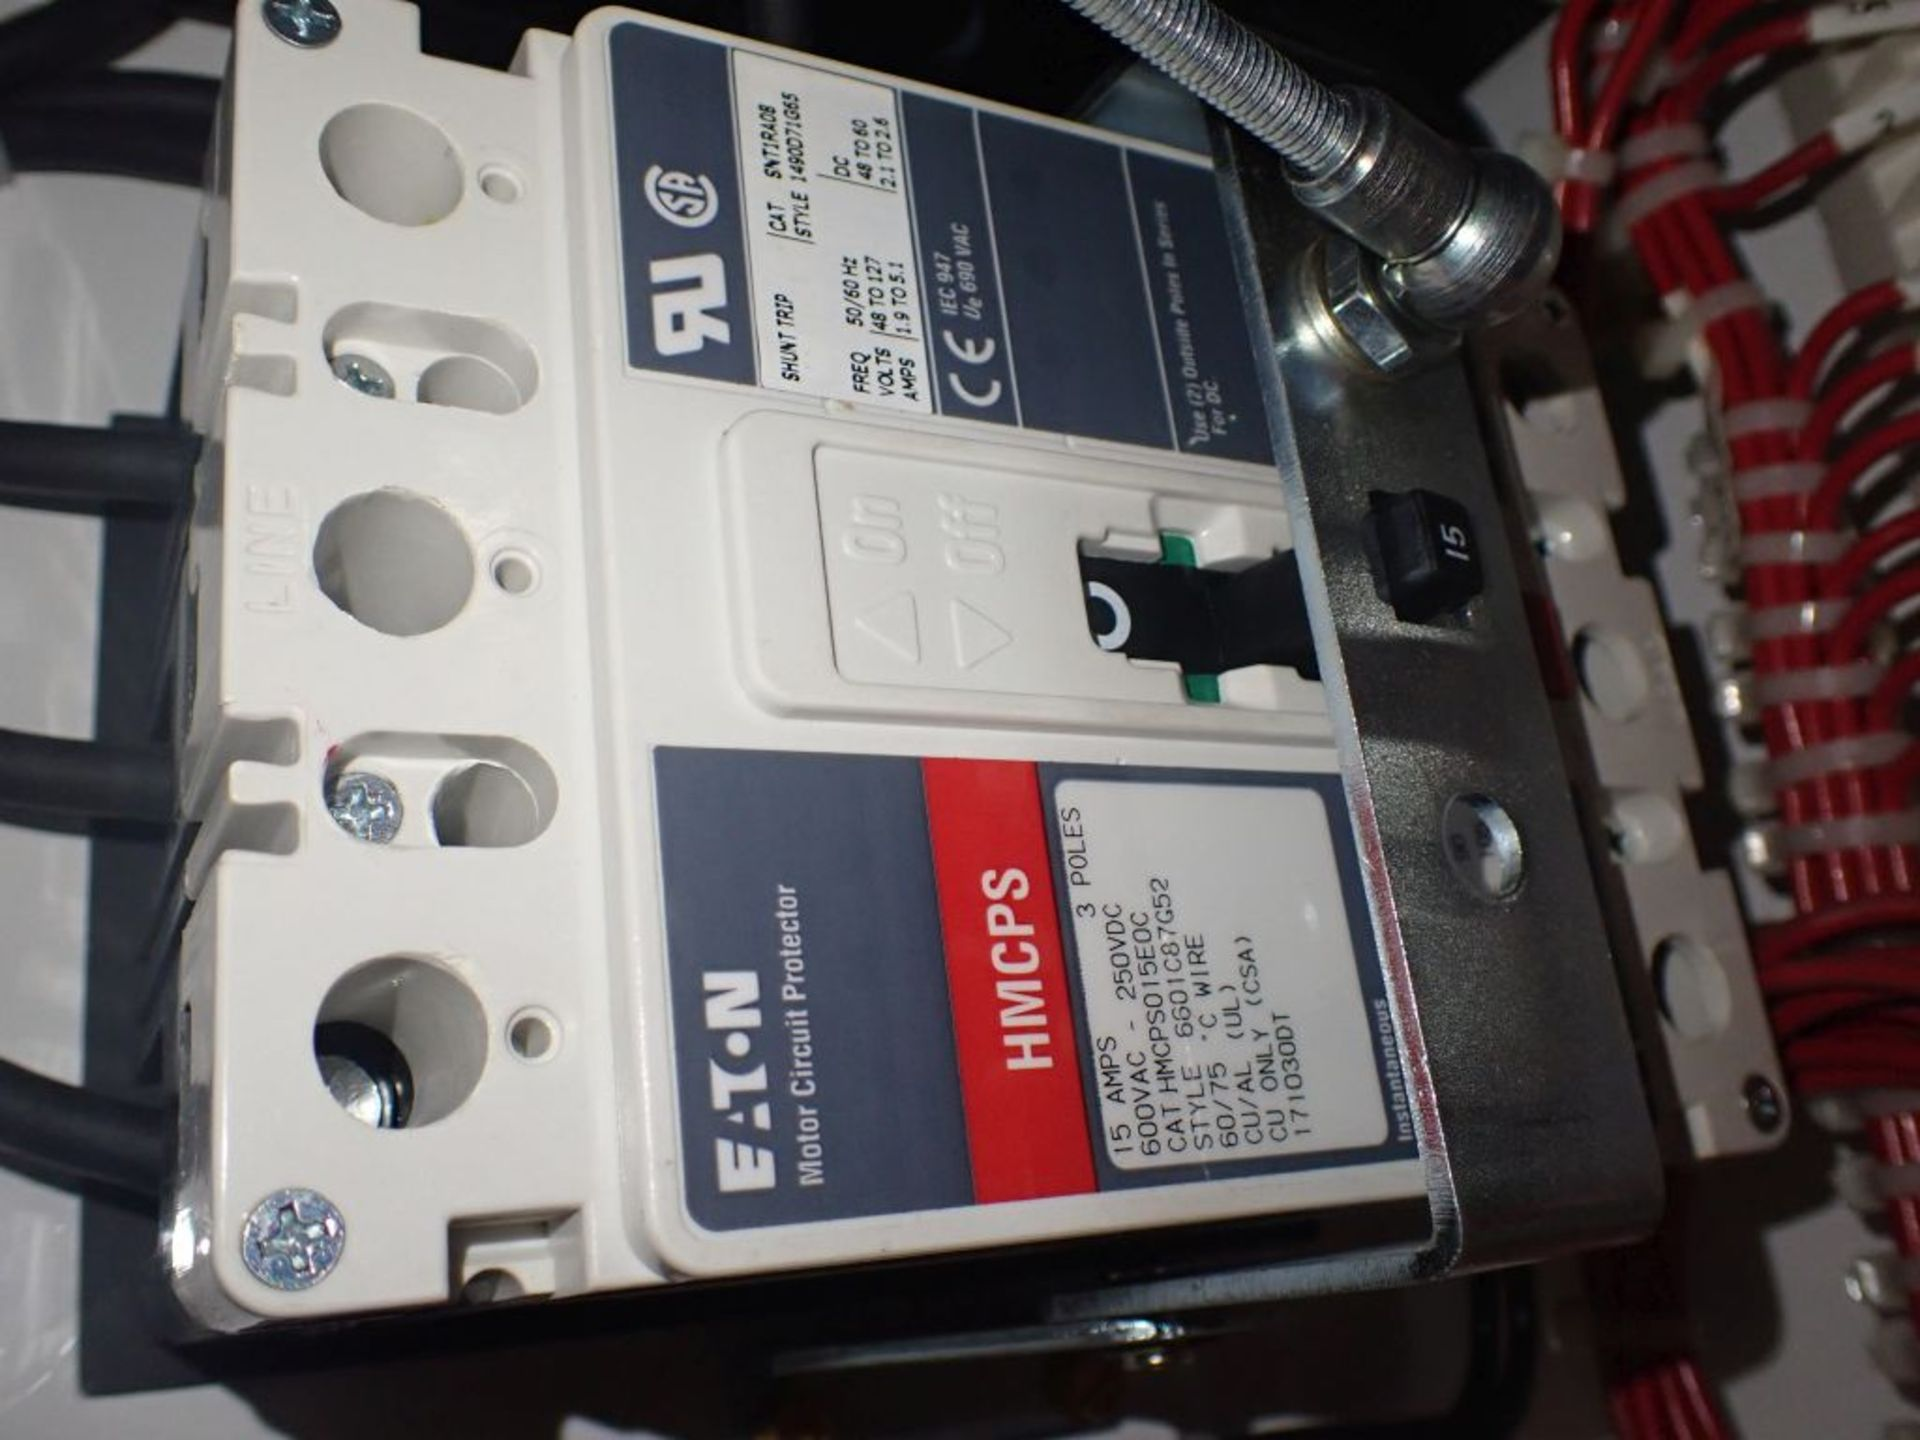 Eaton Freedom Flashgard Motor Control Center   (3) F216-15A-10HP; (1) FDRB-125A, with 150A - Image 28 of 57